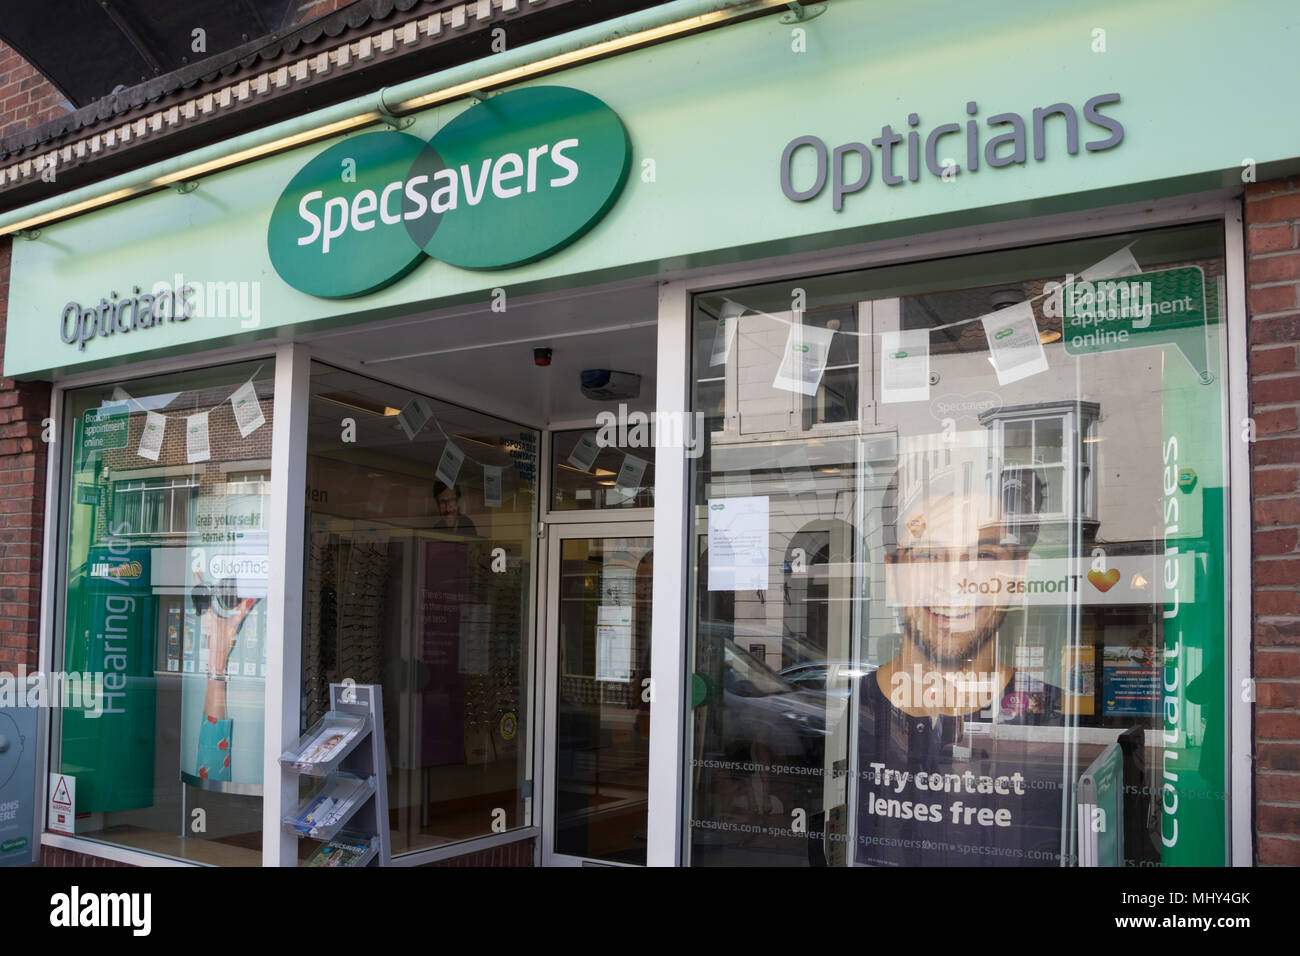 c4a027c34 Specsavers opticians shop in Driffield, East Yorkshire Stock Photo ...